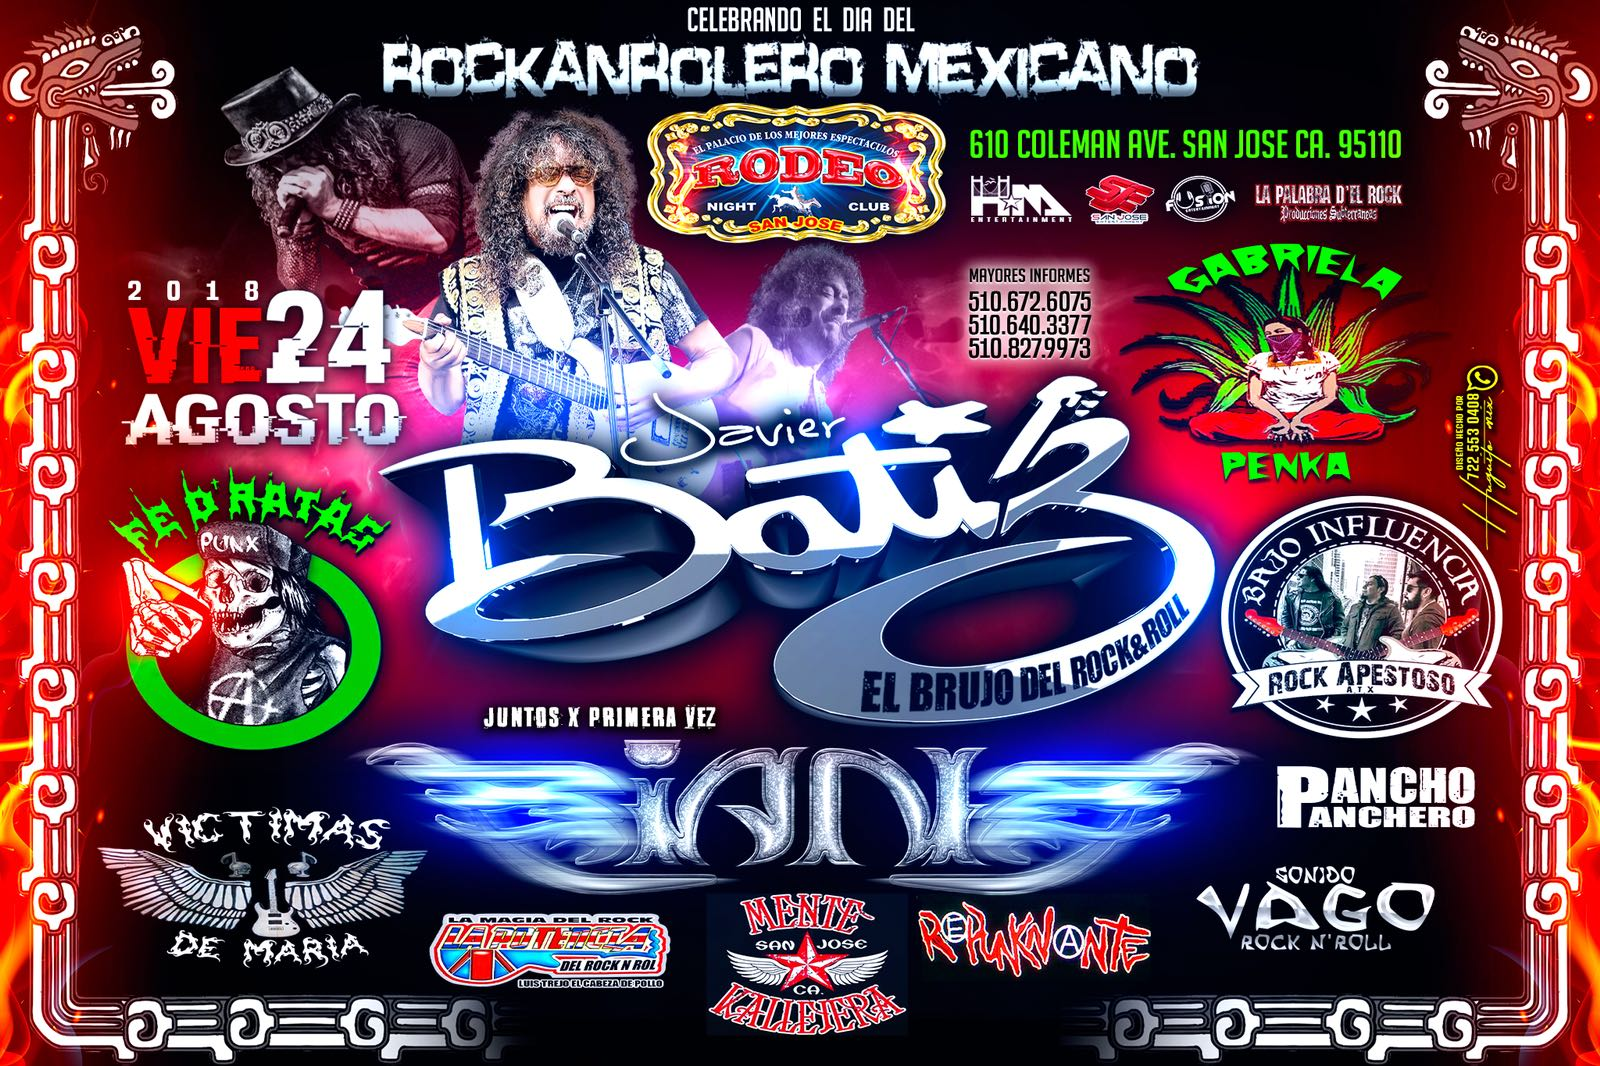 Javier Batiz San Jose Tickets Boletos Rodeo Night Club